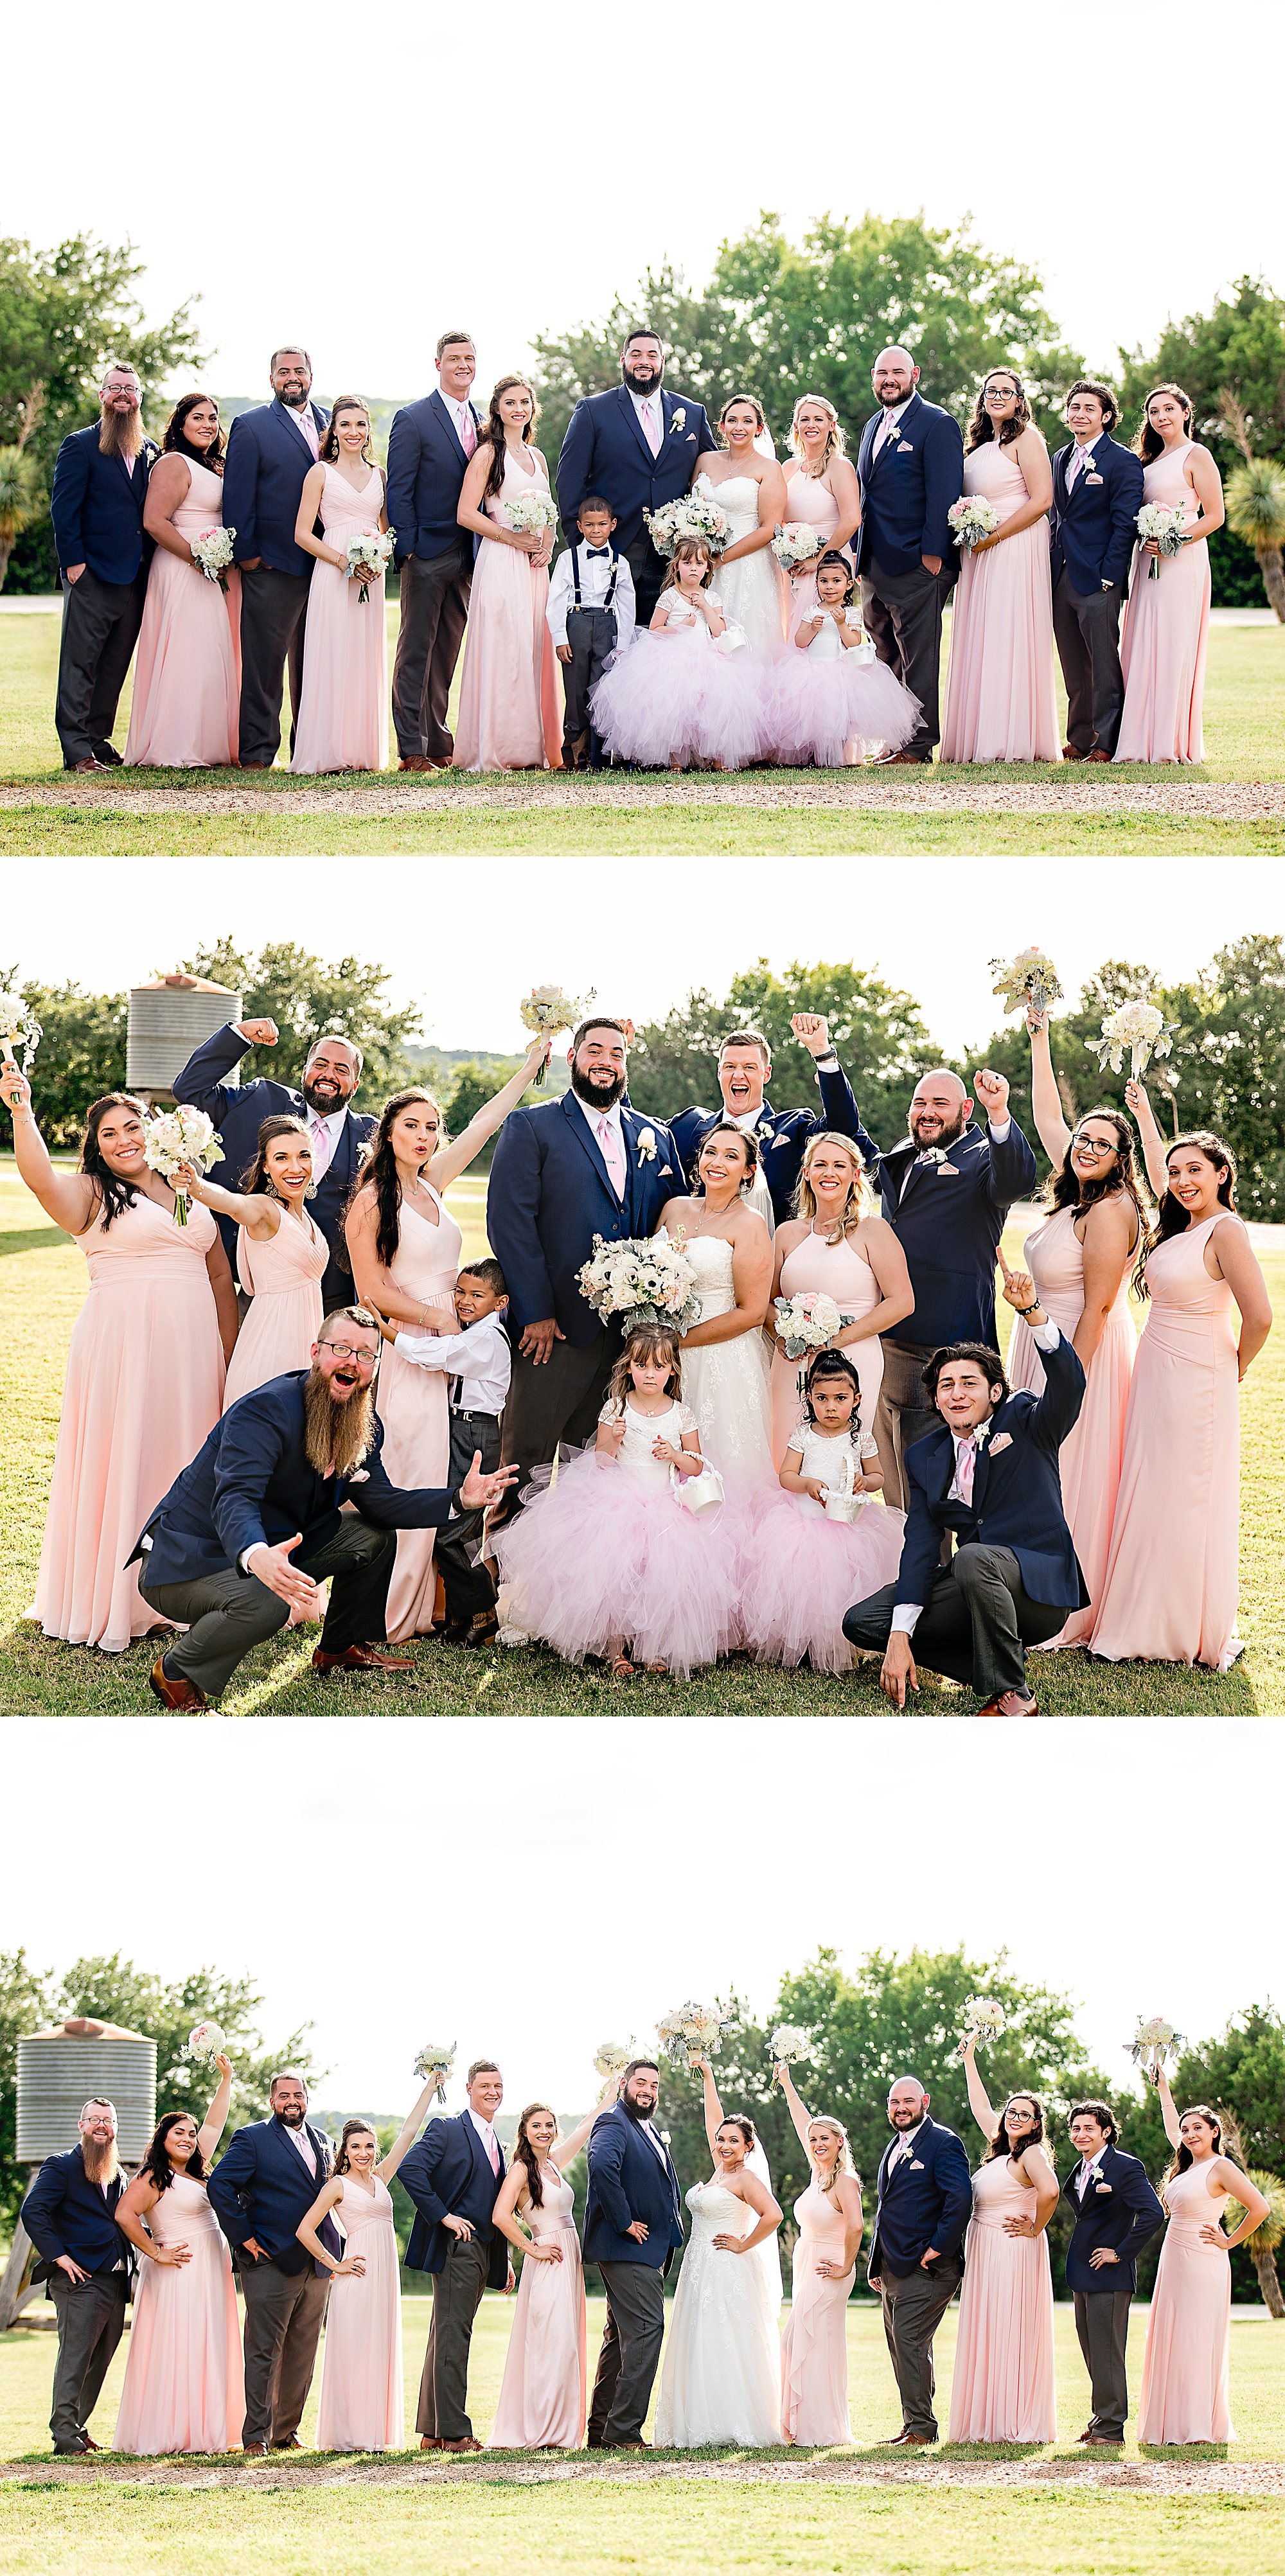 Wedding-Photographer-Bulverde-Texas-Western-Sky-Event-Venue-Carly-Barton-Photography_0033.jpg